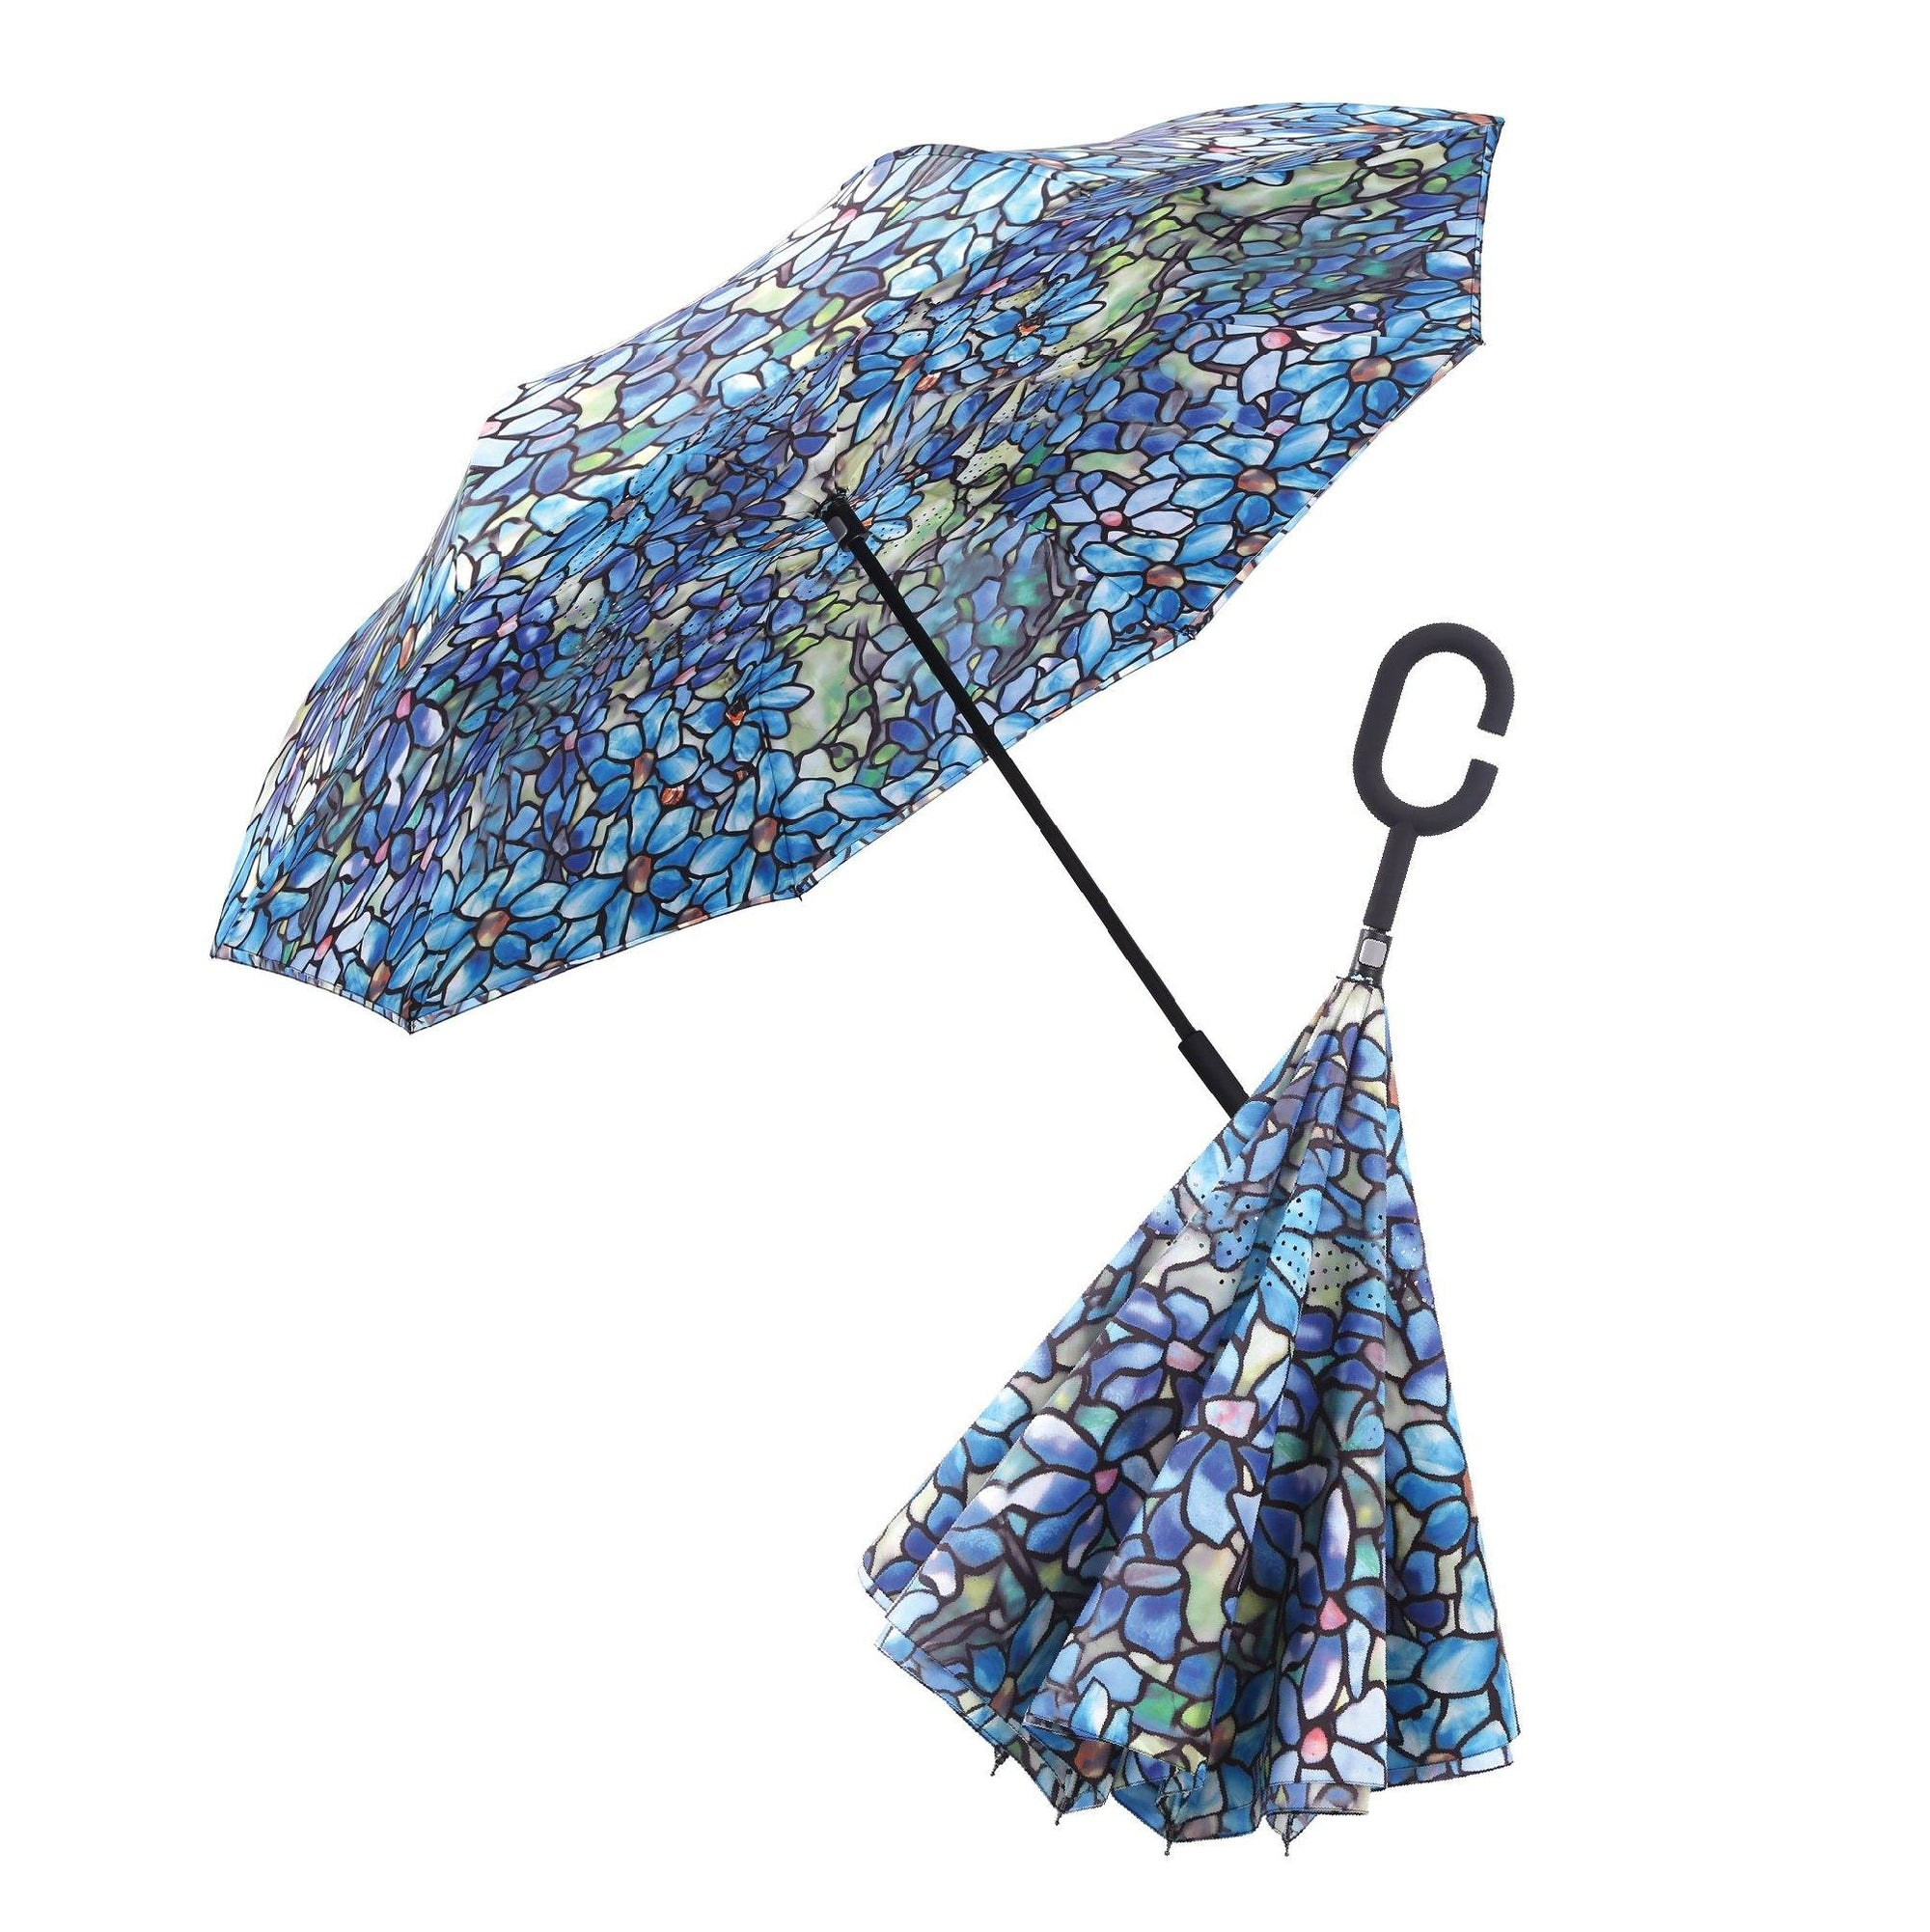 A video of a RainCaper Tiffany Clematis reverse (inside-out) umbrella opening and closing